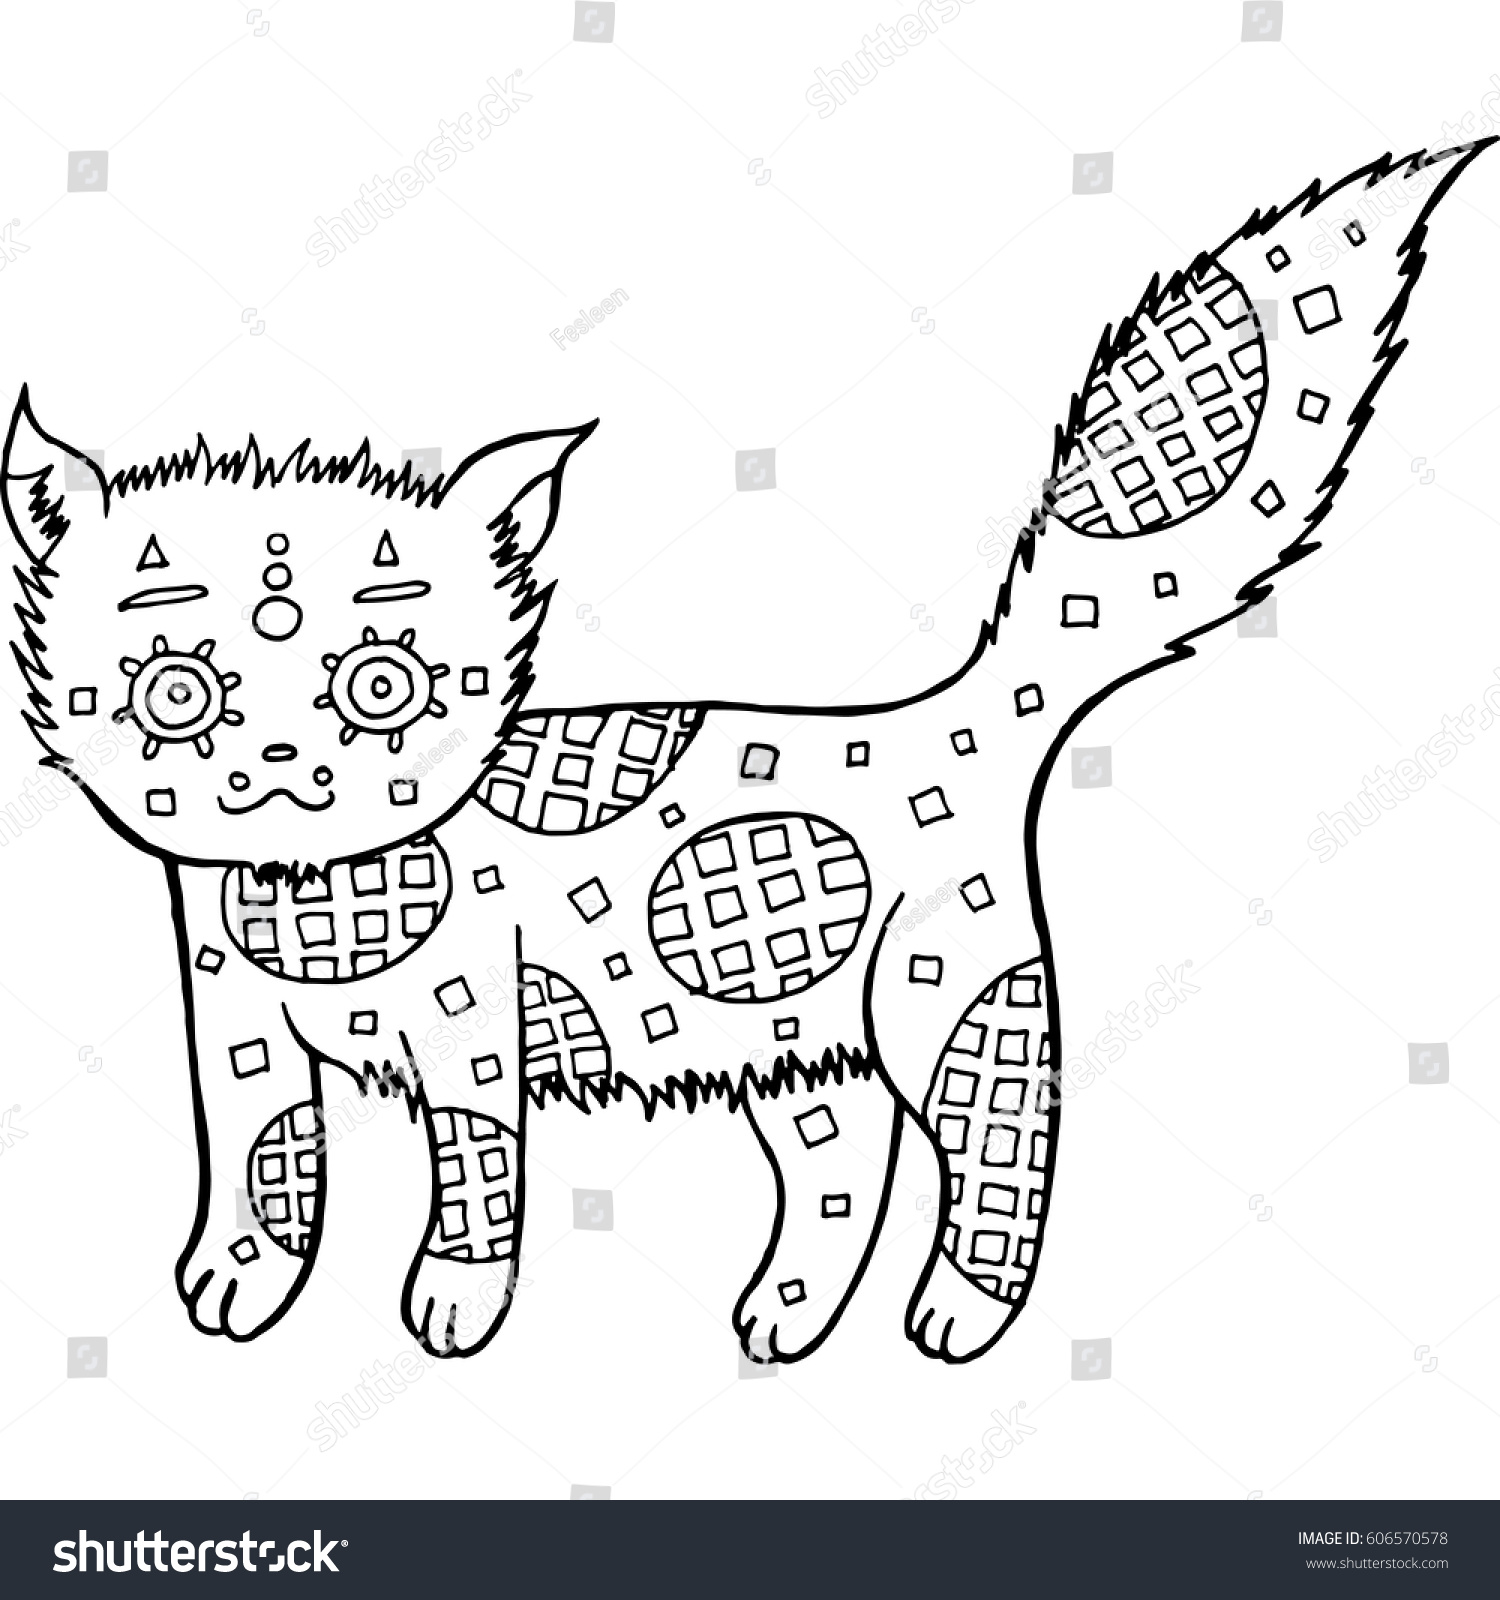 stock vector hand drawn cat coloring page funny vector illustration in black and white color for background